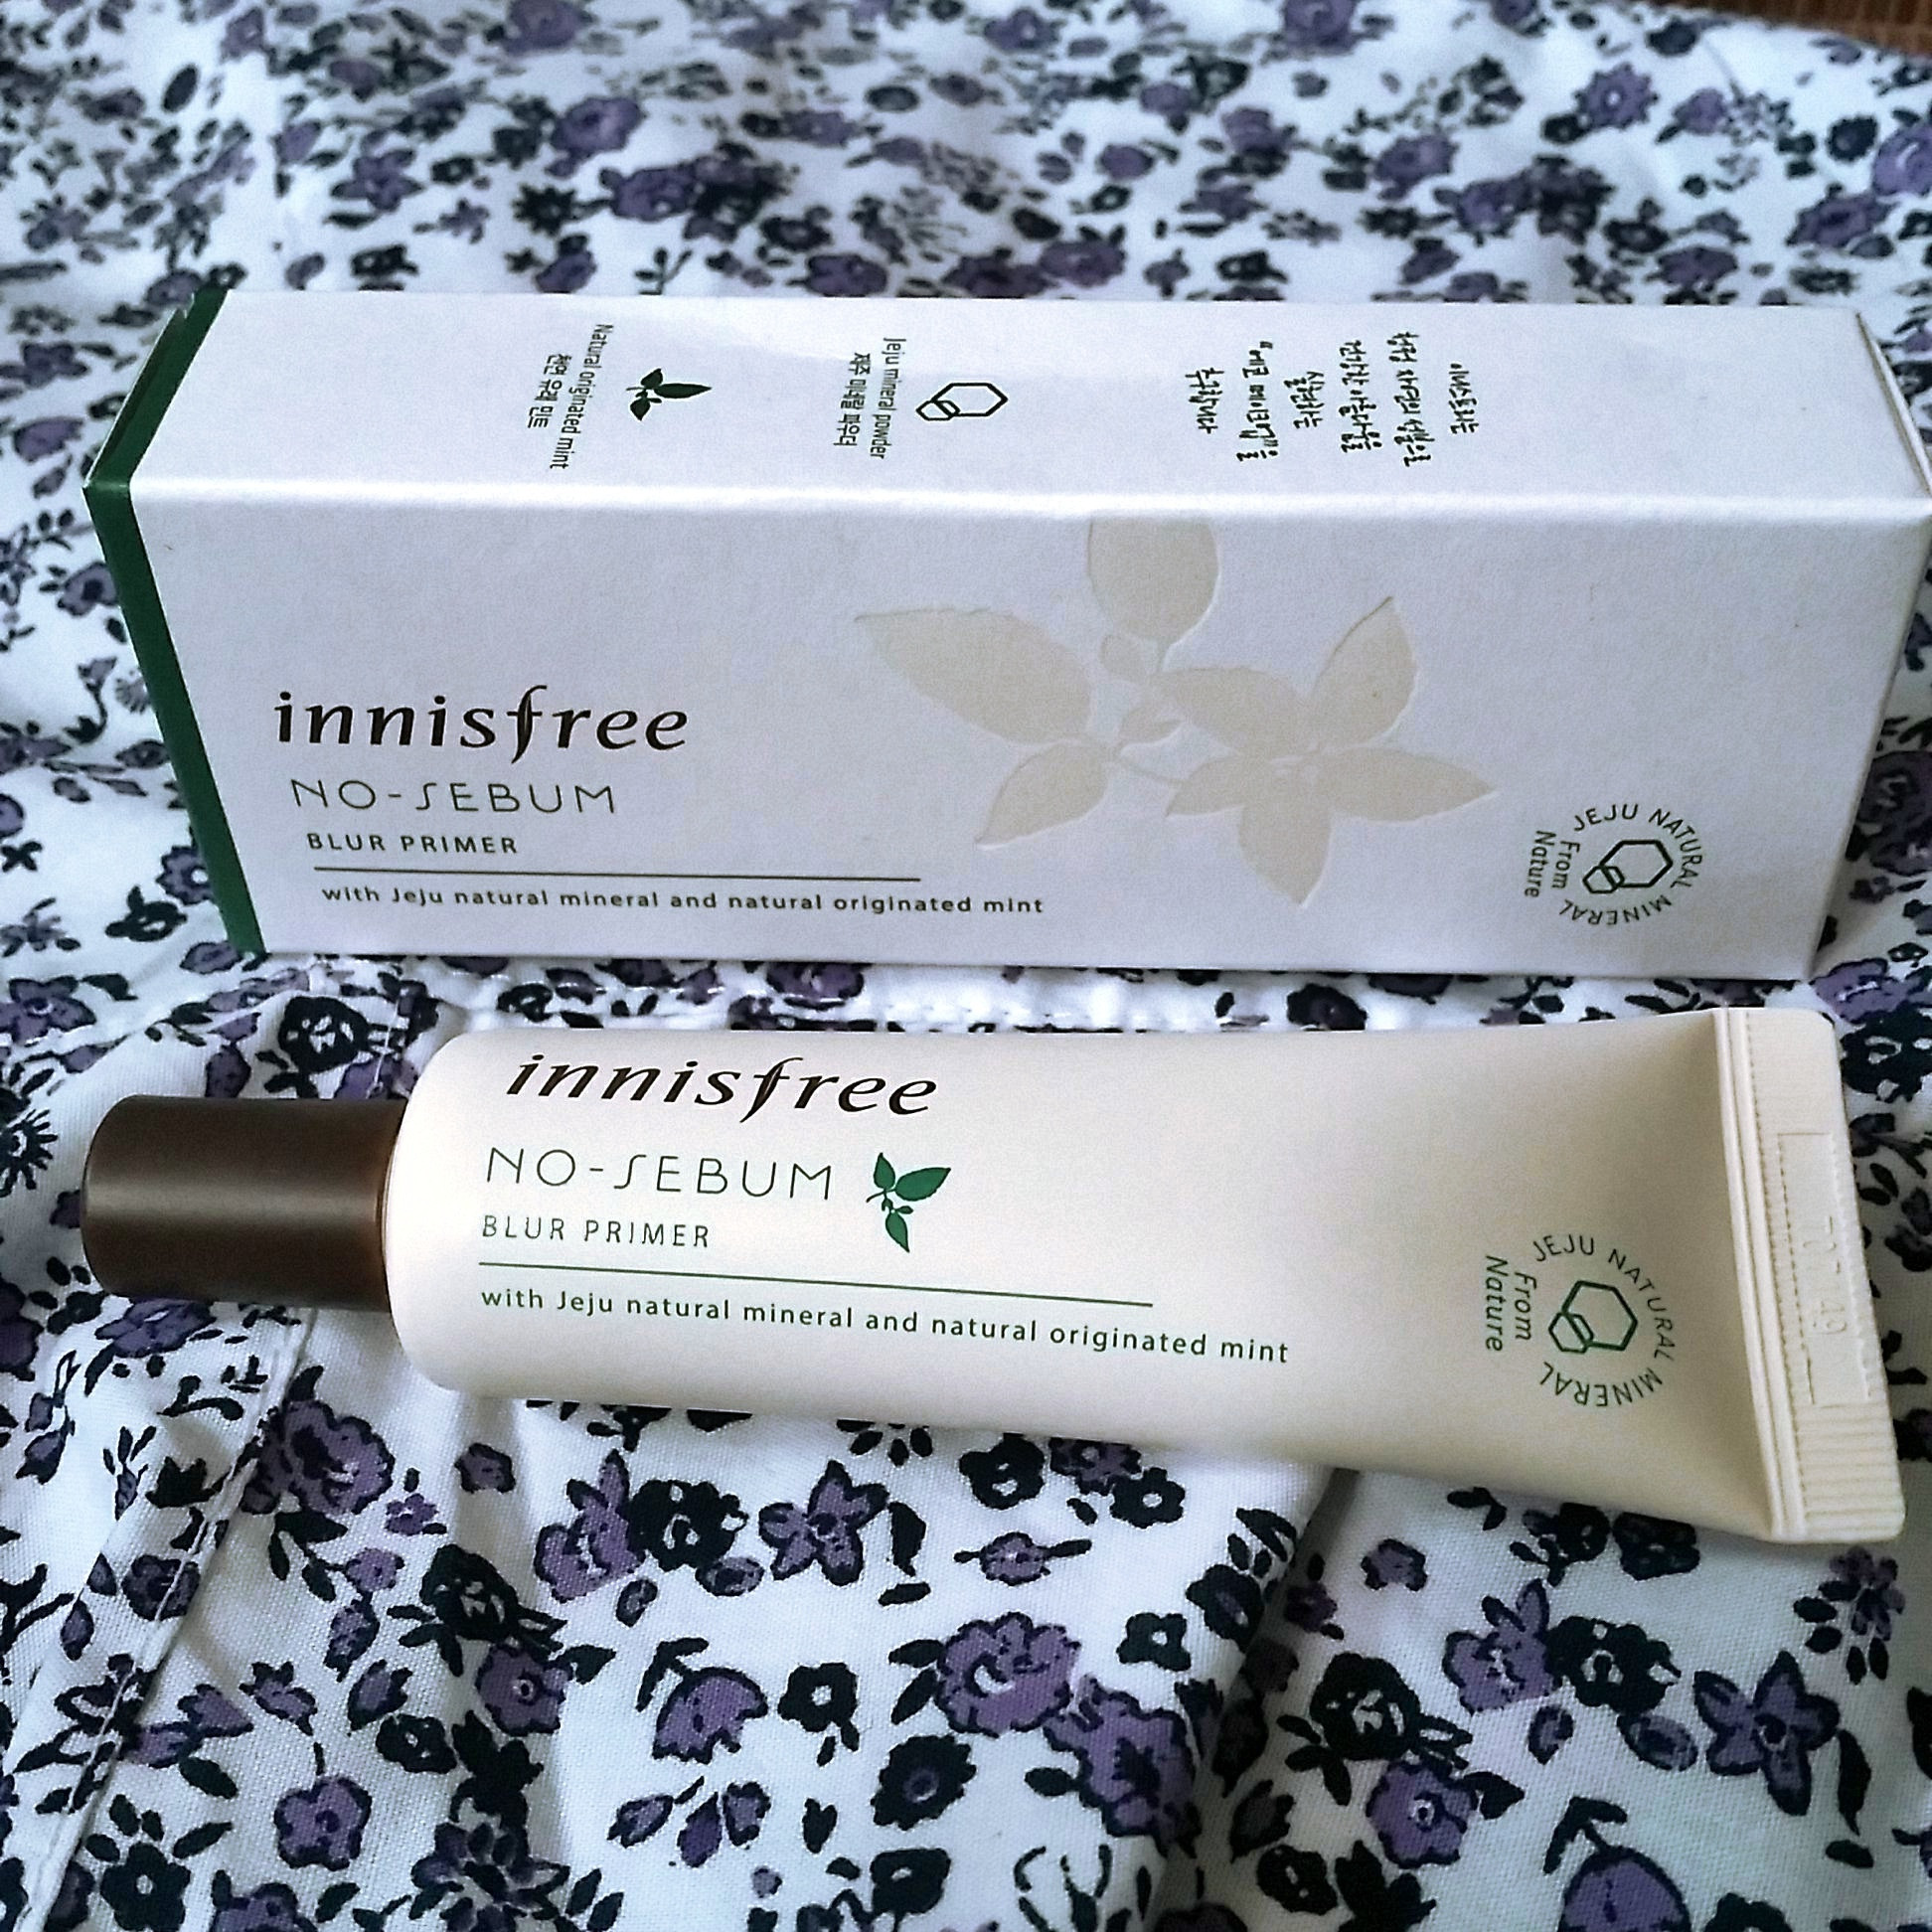 Innisfree No Sebum Blur Prime